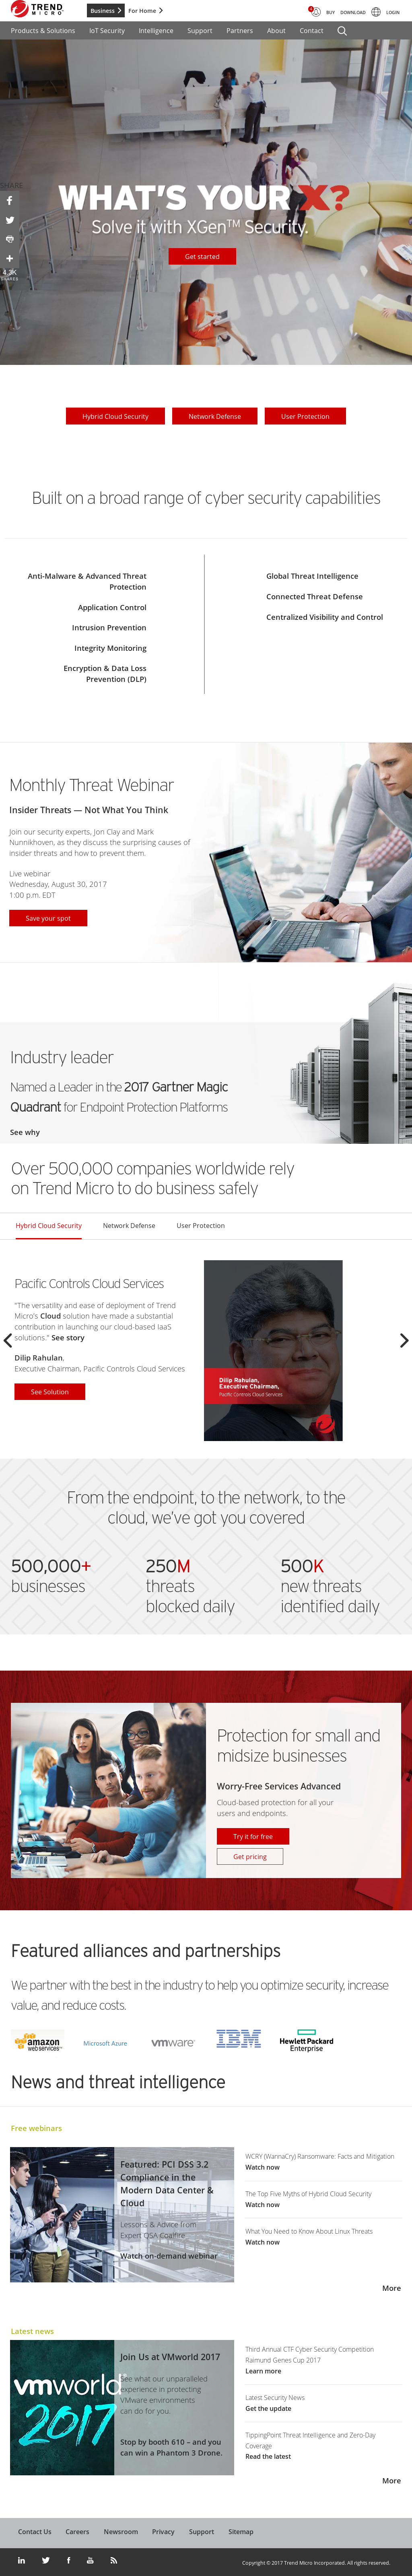 Trend Micro Competitors, Revenue and Employees - Owler